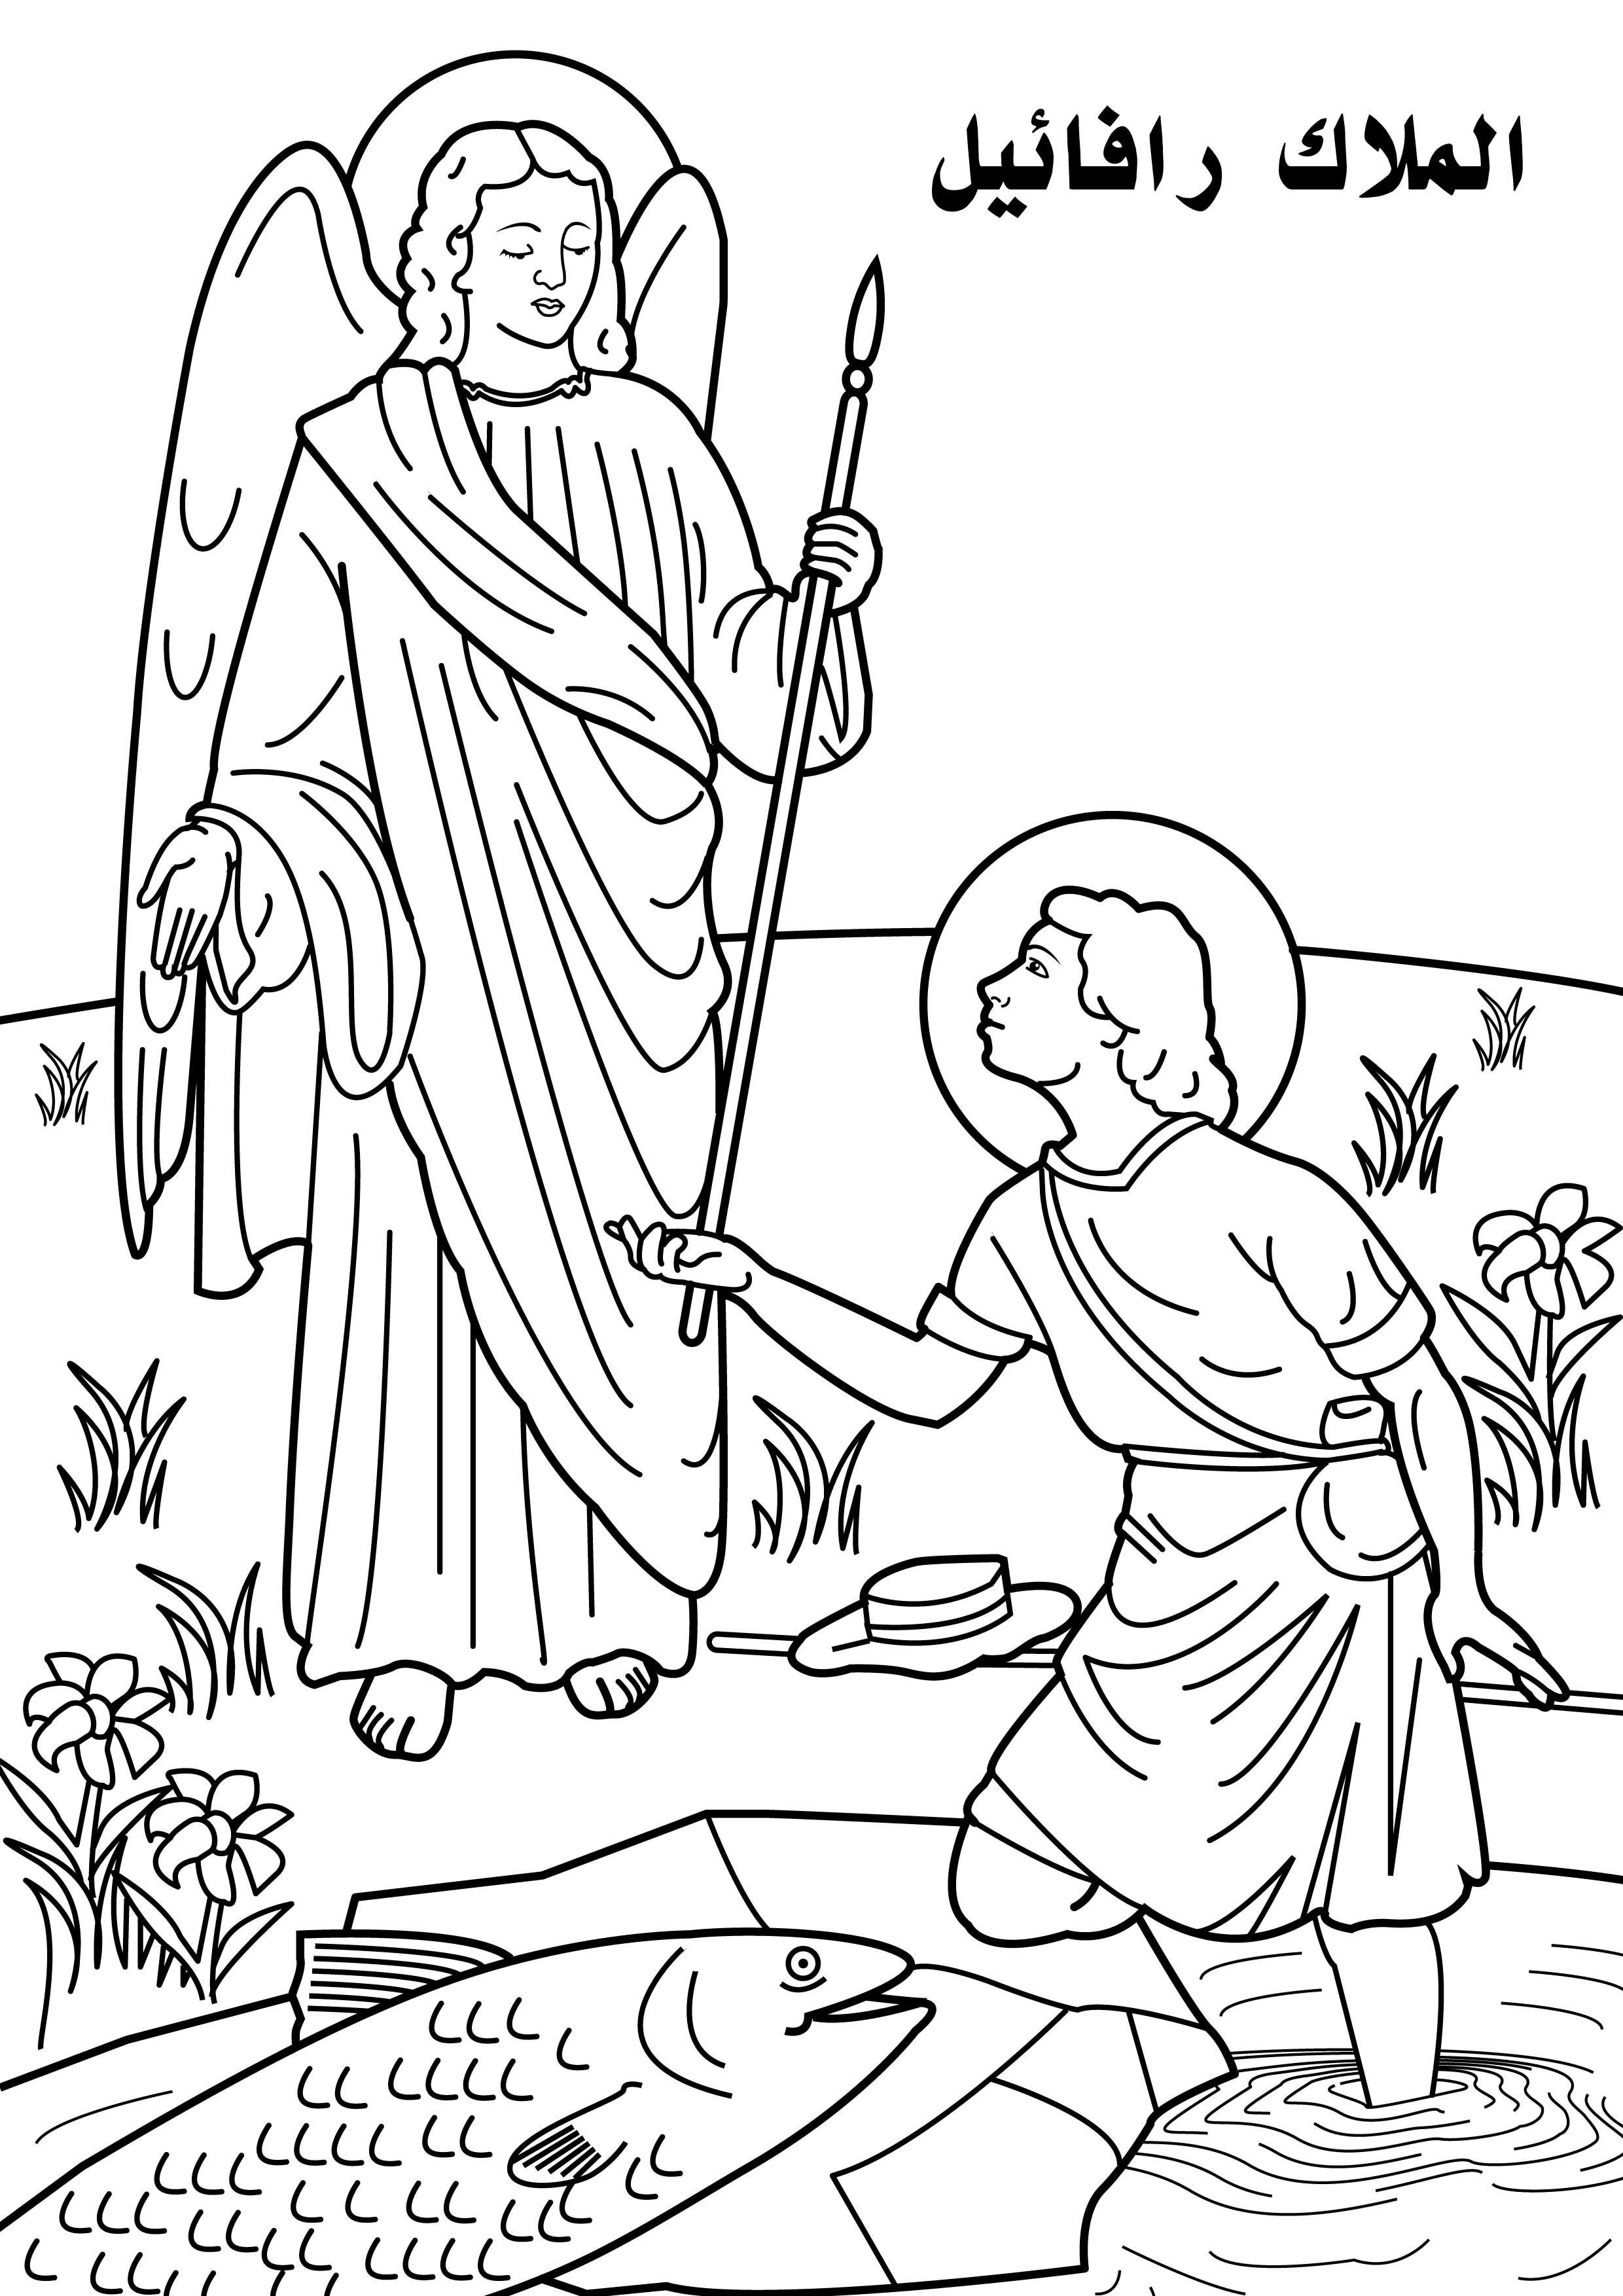 joseph shares food coloring pages share pages shares food coloring joseph